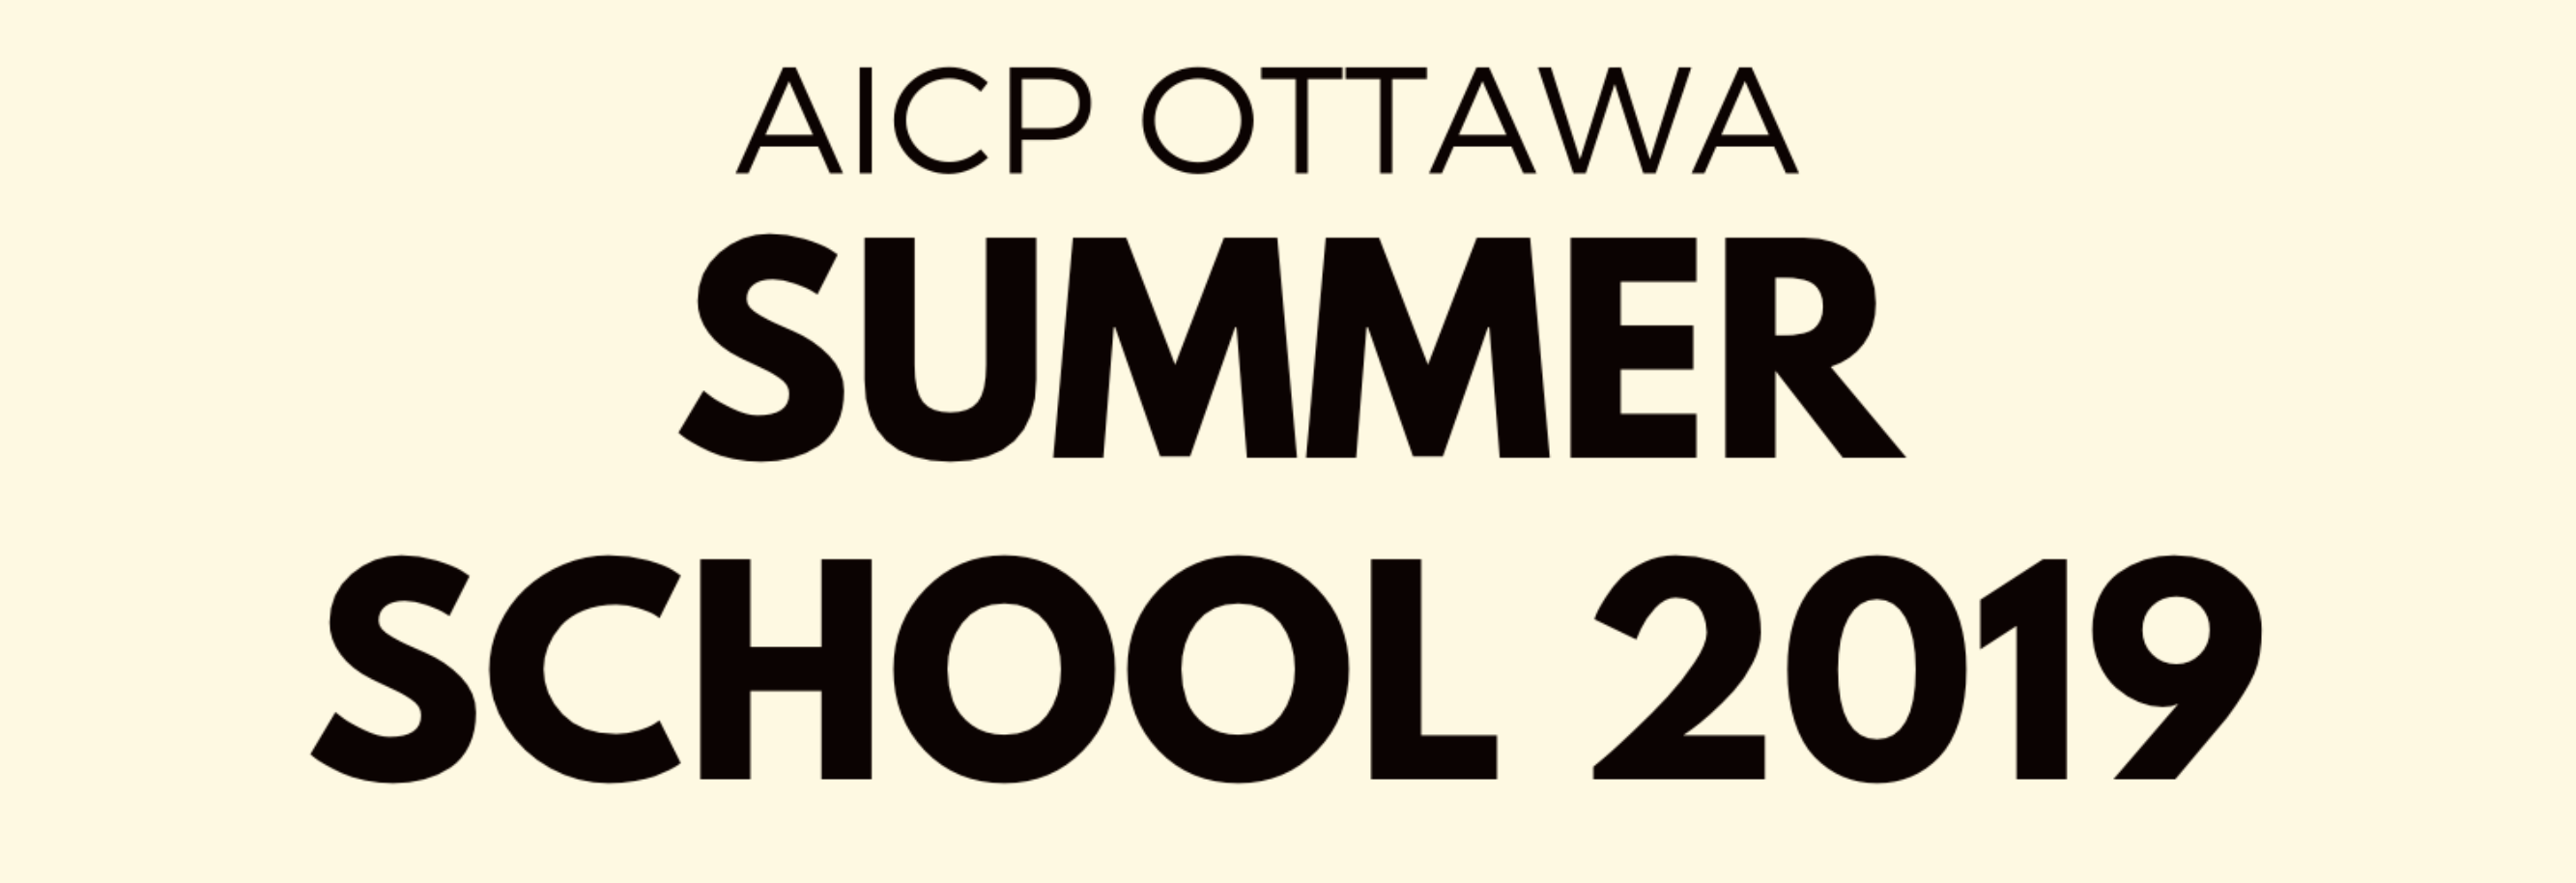 AICP Ottawa Summer School 2019